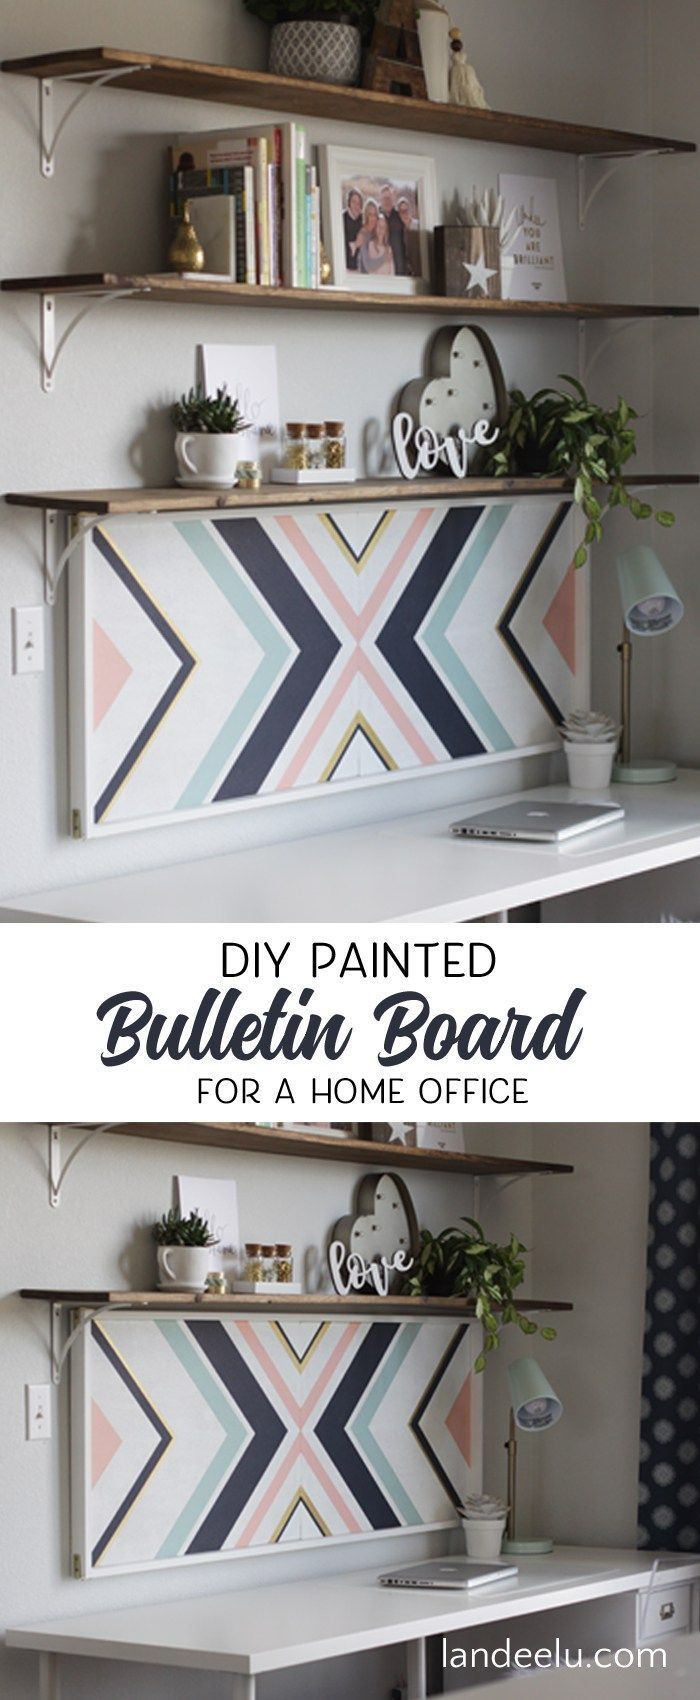 Amazingly Stylish DIY Cork Board You Will Want to Make - Pretty and Easy Home Office or Teen Bedroom Organizer and Decor piece you'll love! http://landeelu.com